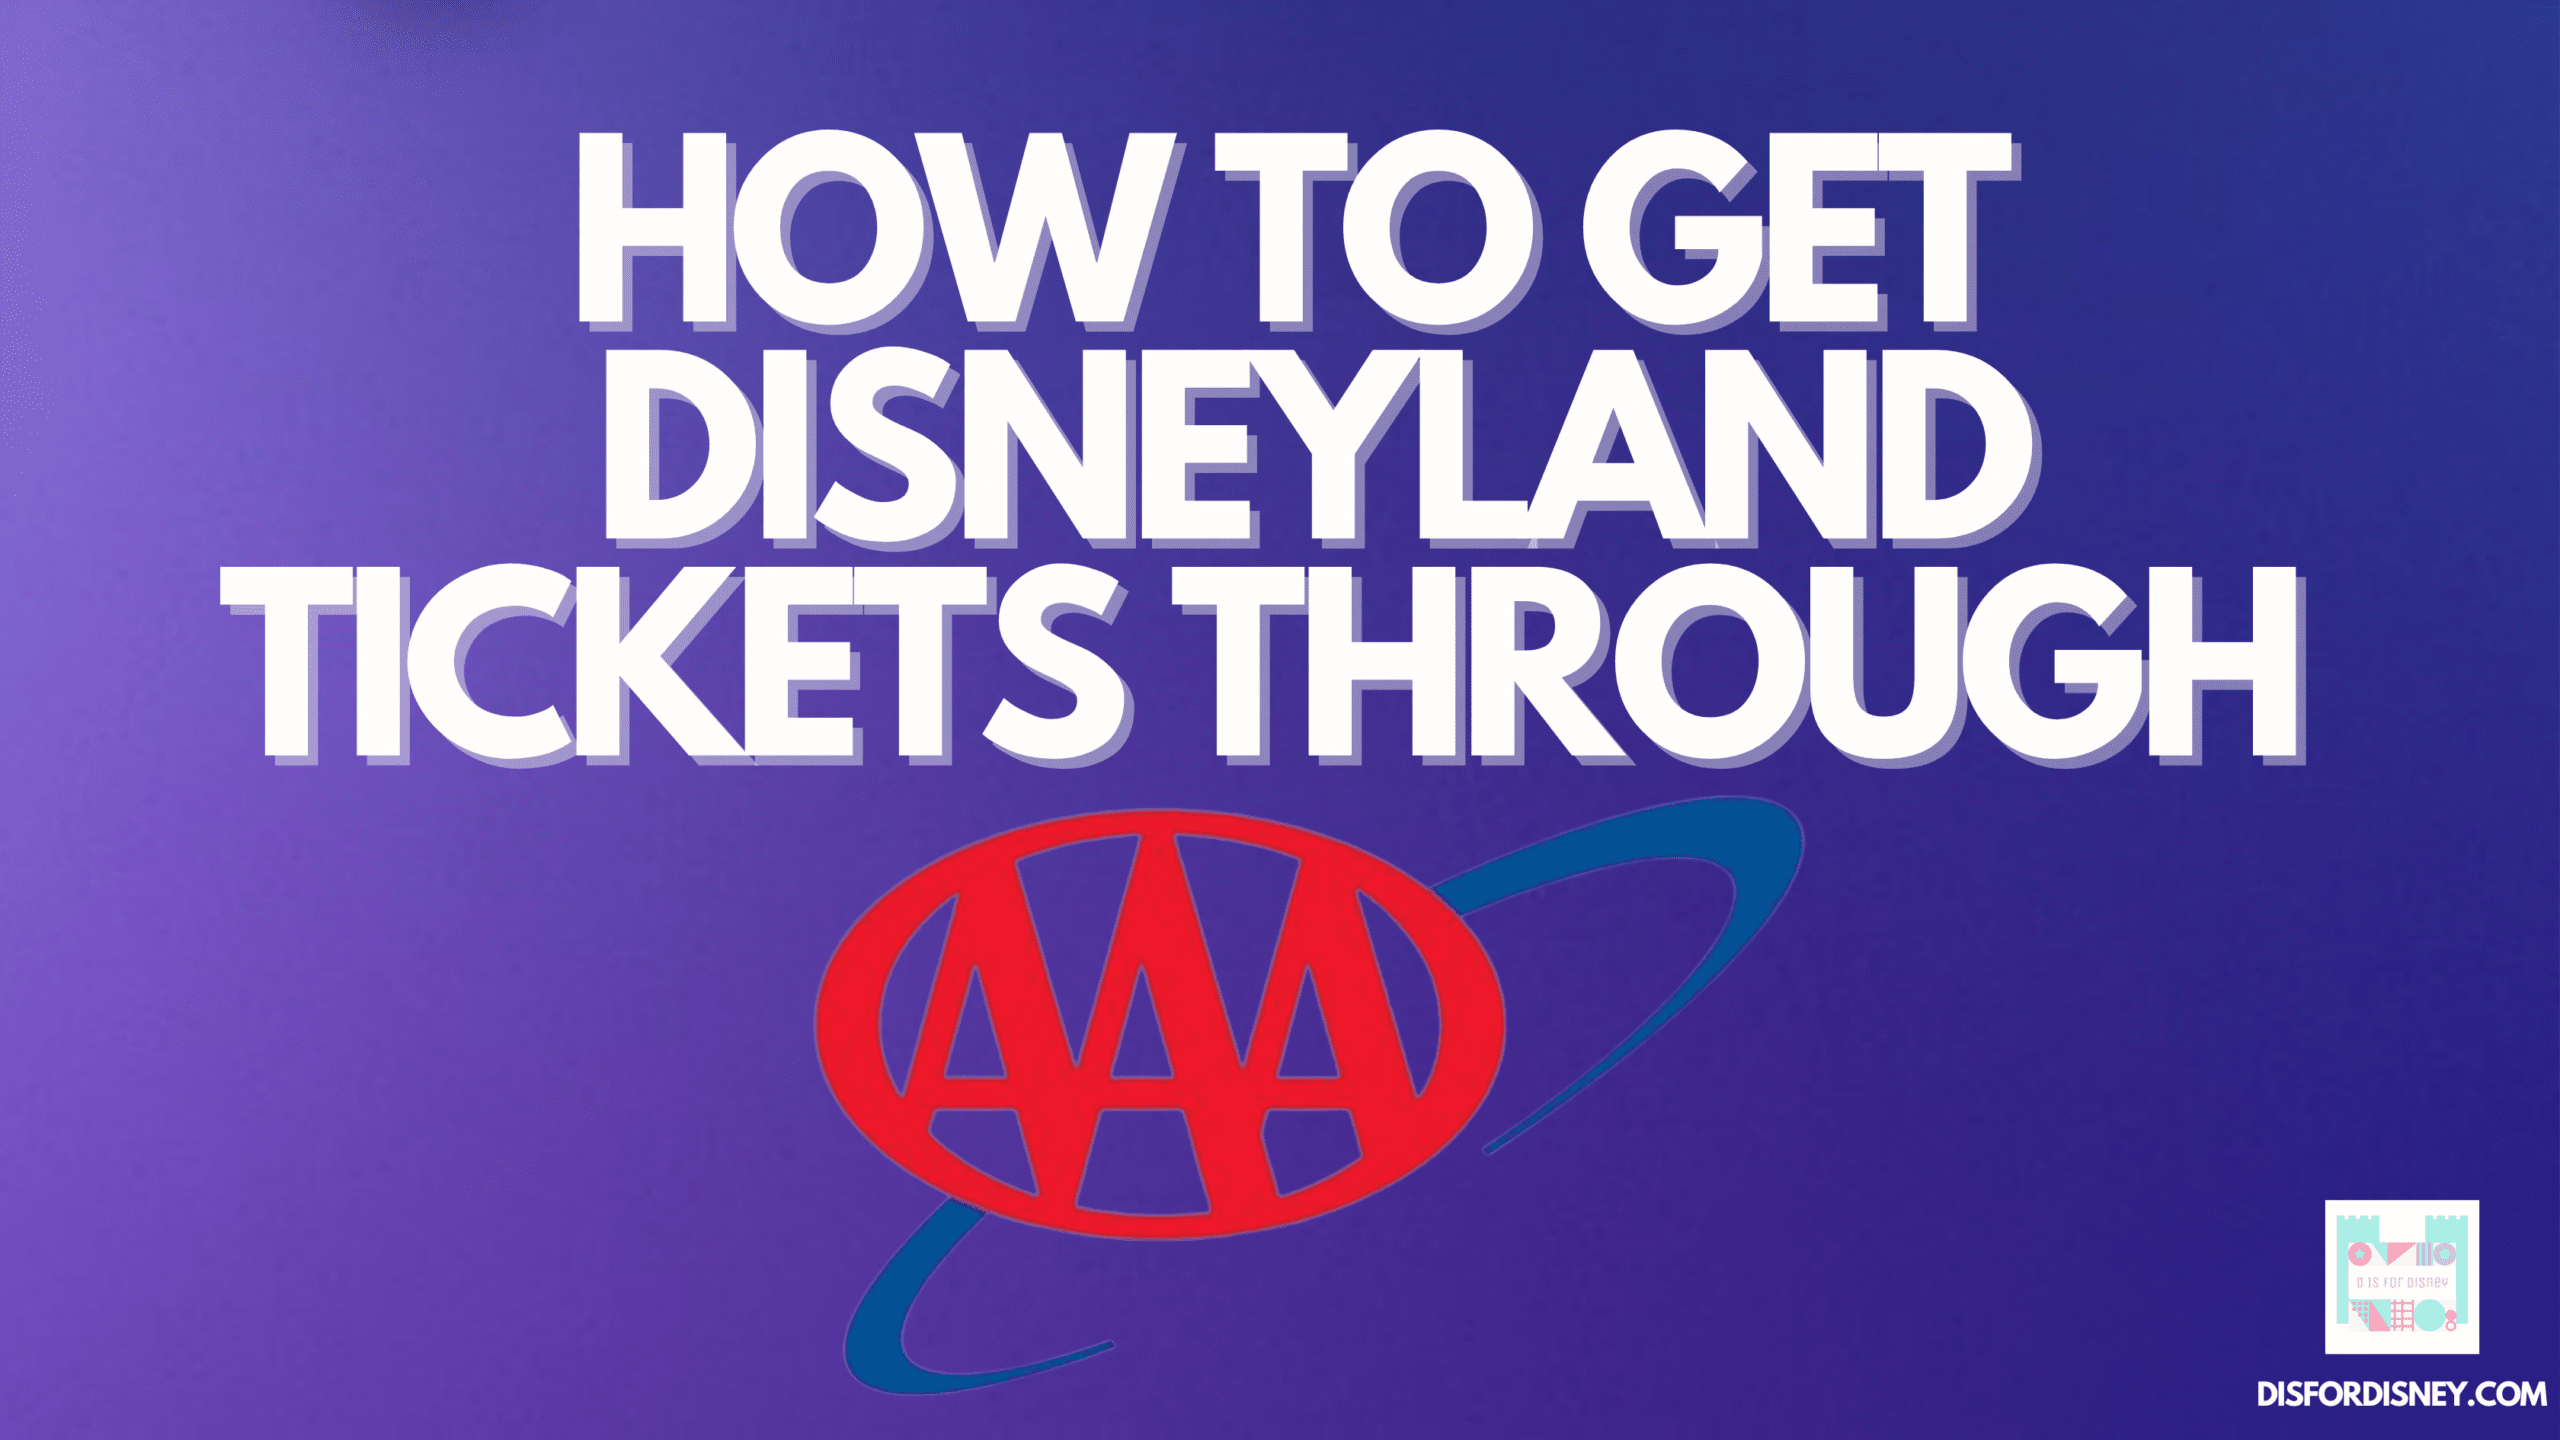 AAA Disneyland Tickets